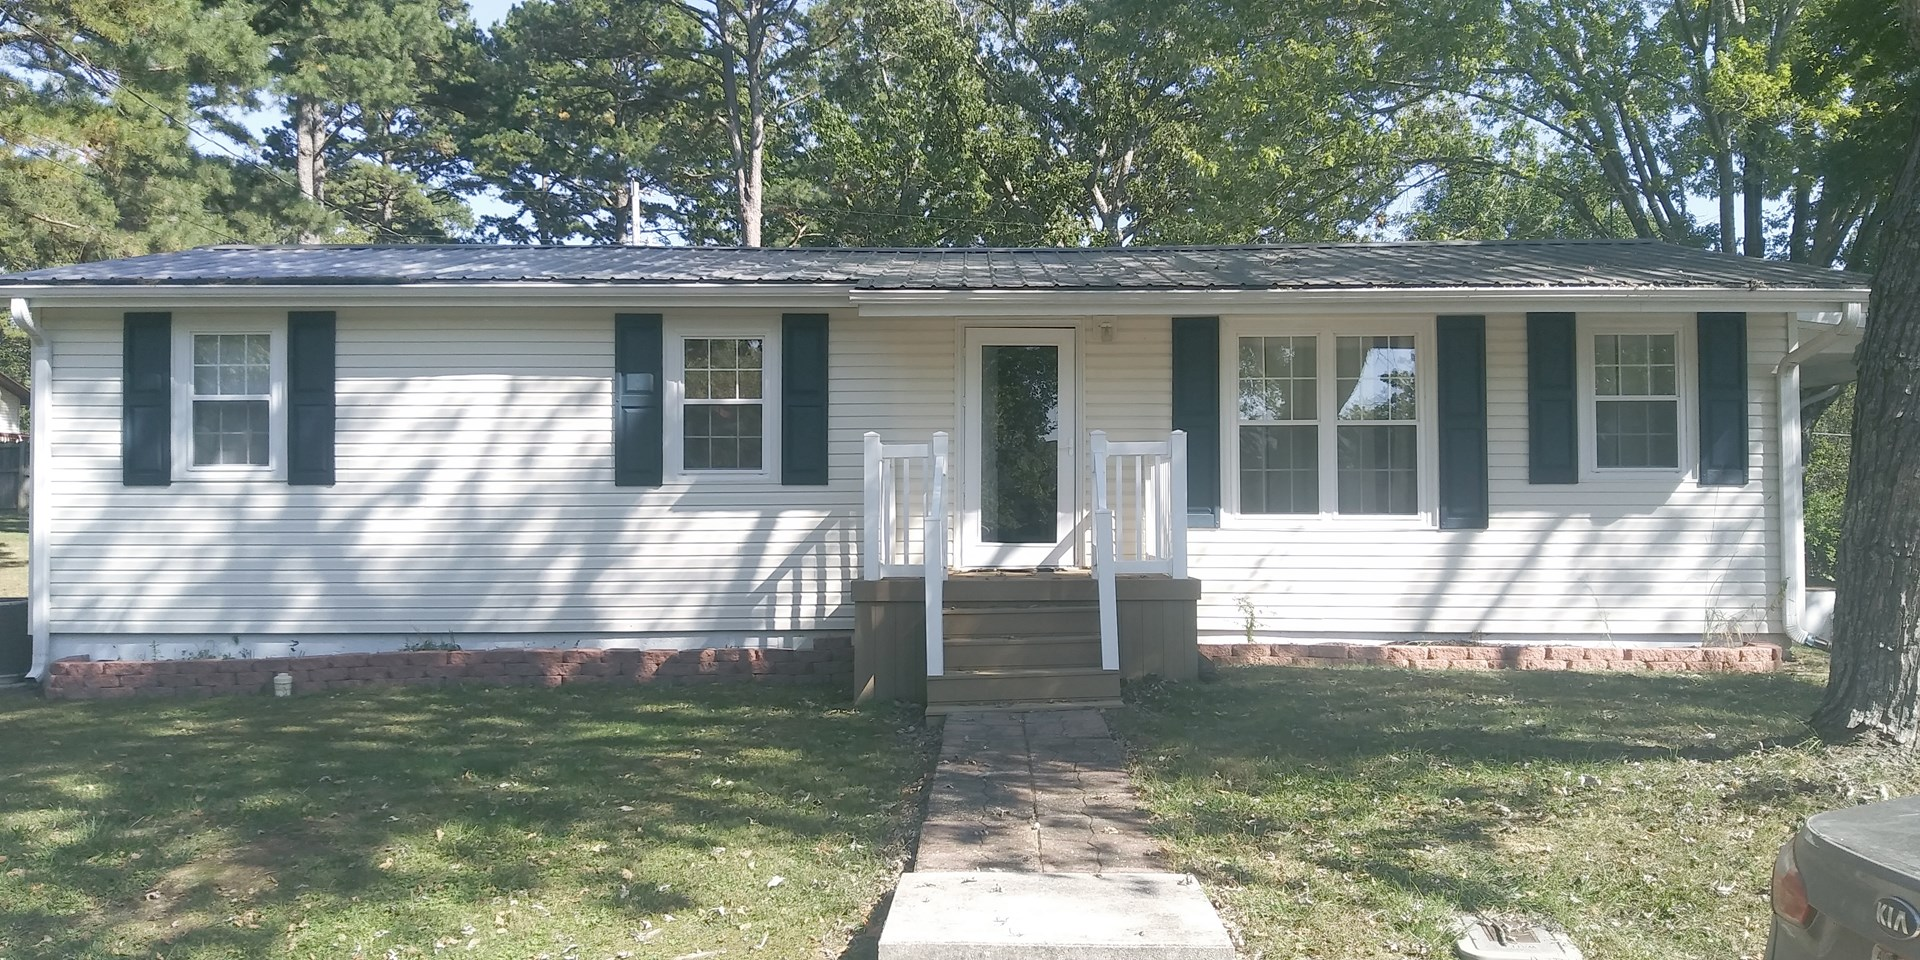 House for Sale in the Southern Missouri Ozarks